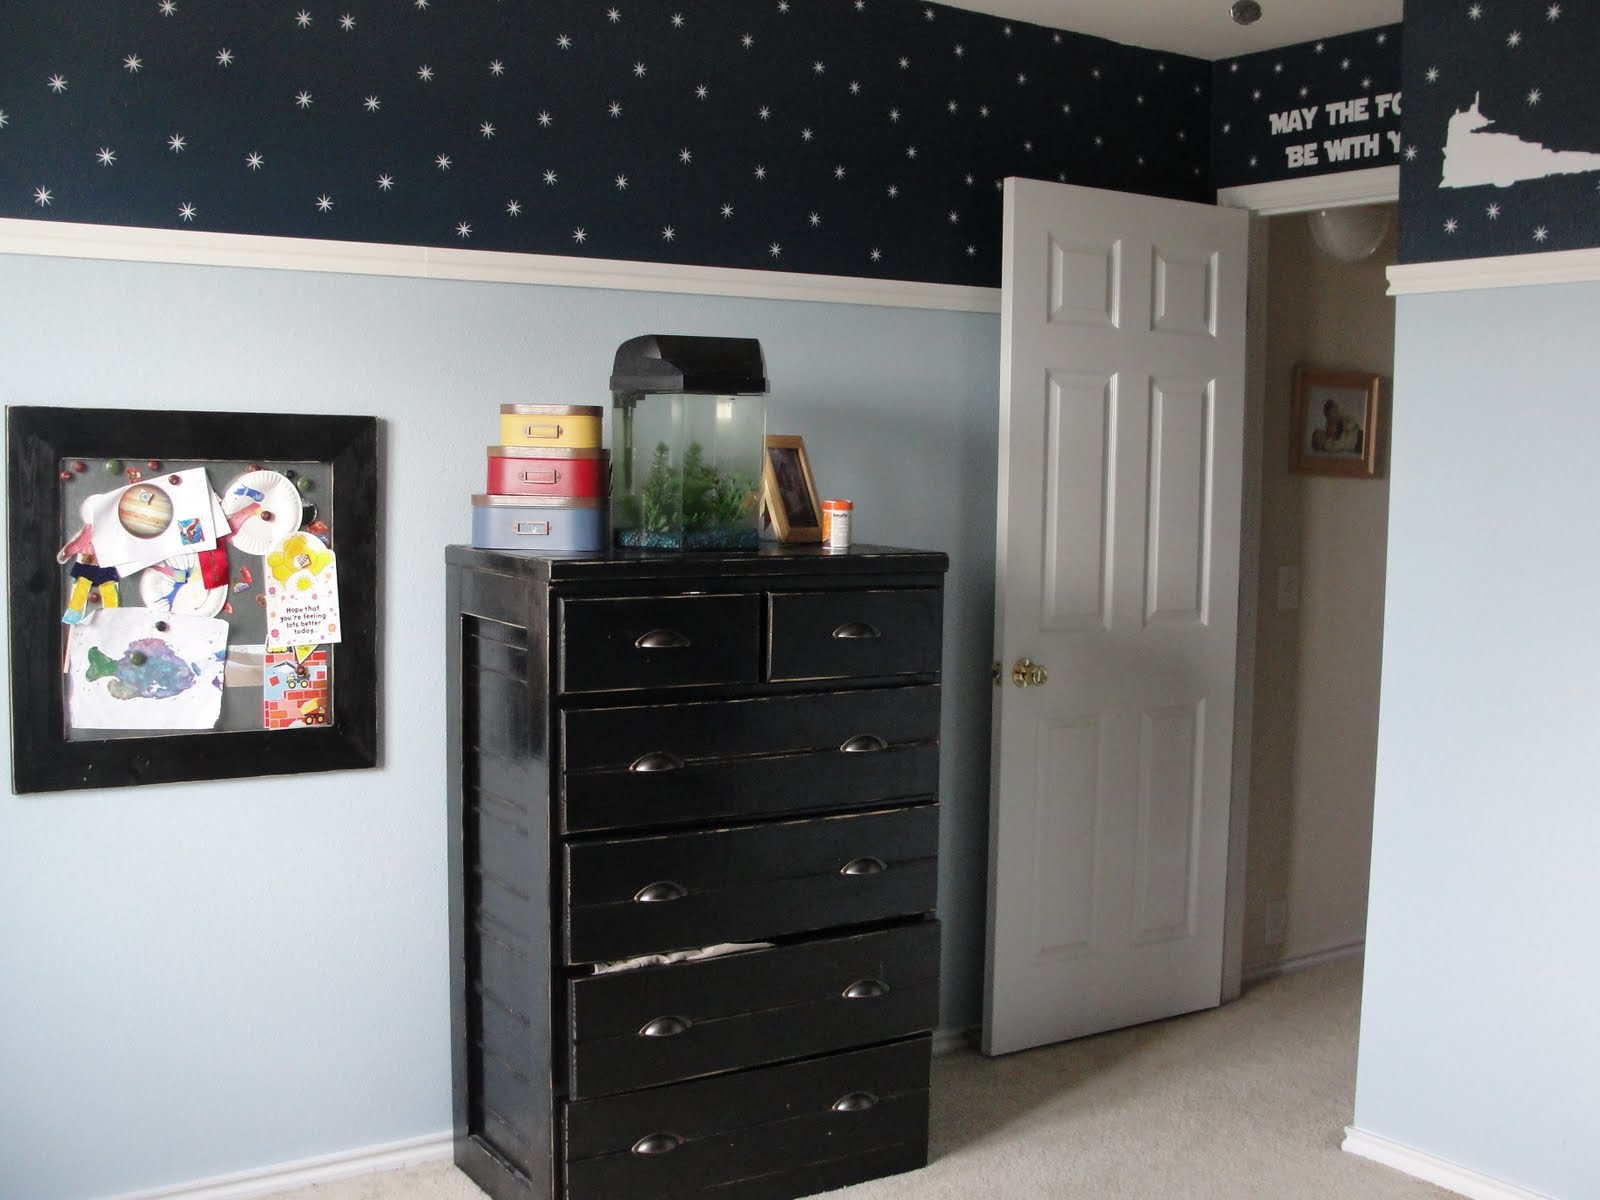 Star Wars Themed Bedroom Ideas Piccadilly Peddlers Boy 39s Star Wars Room